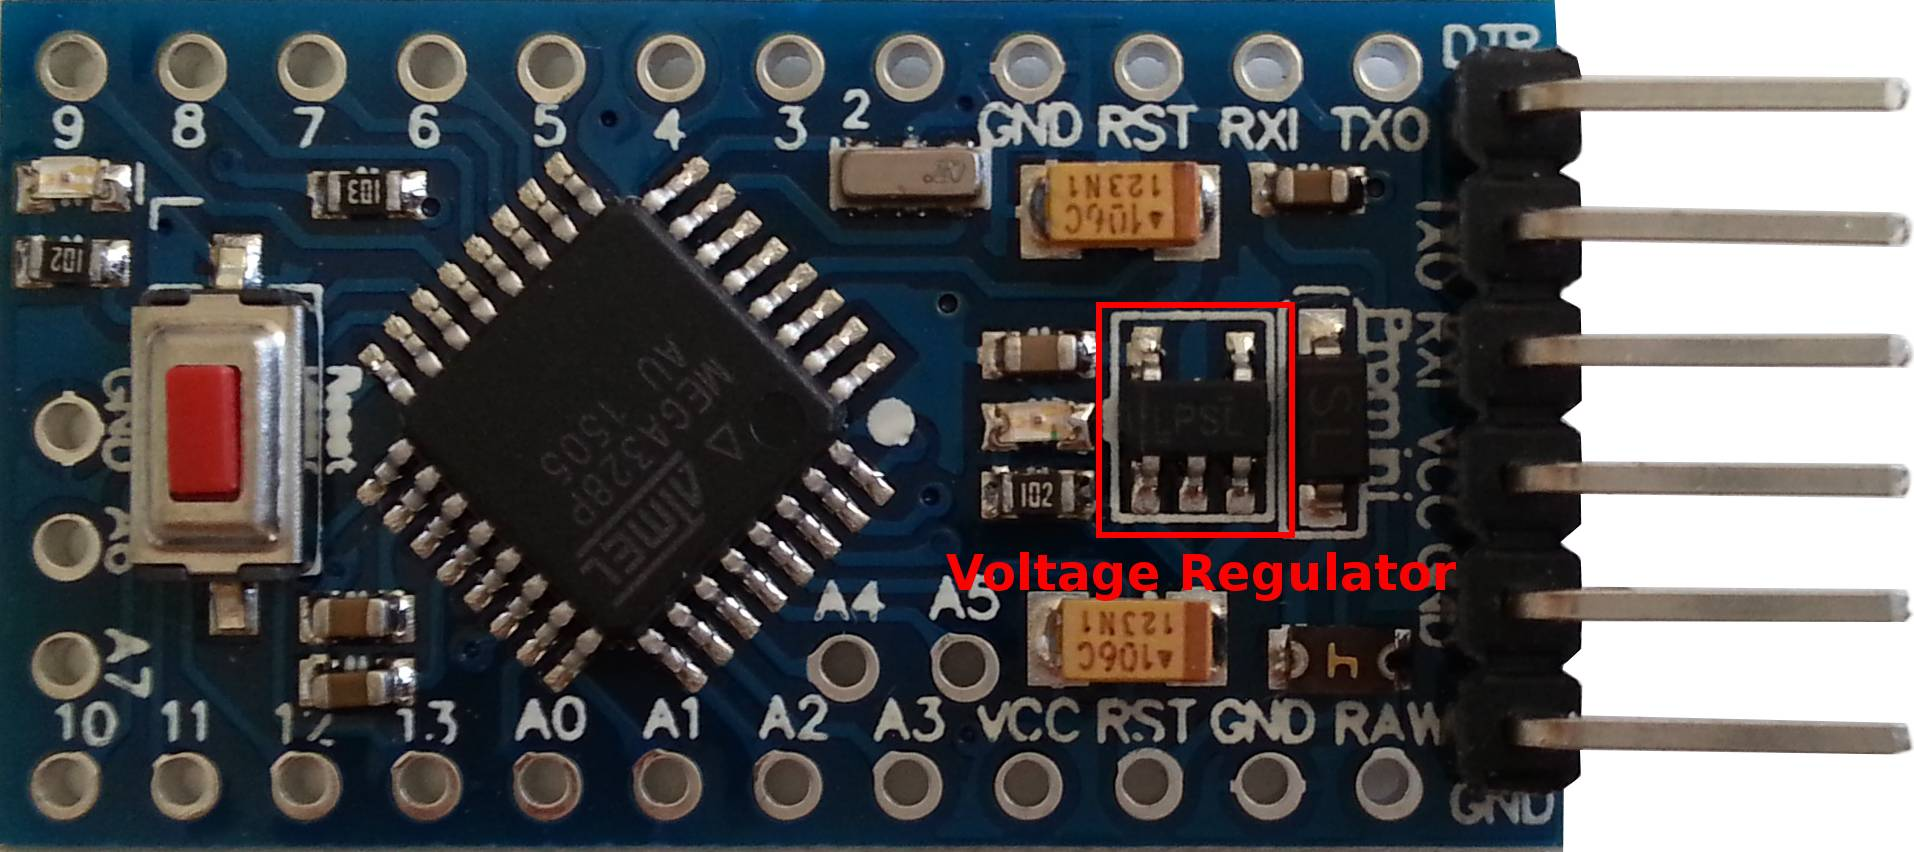 How to modify an Arduino Pro Mini (clone) for low power consumption